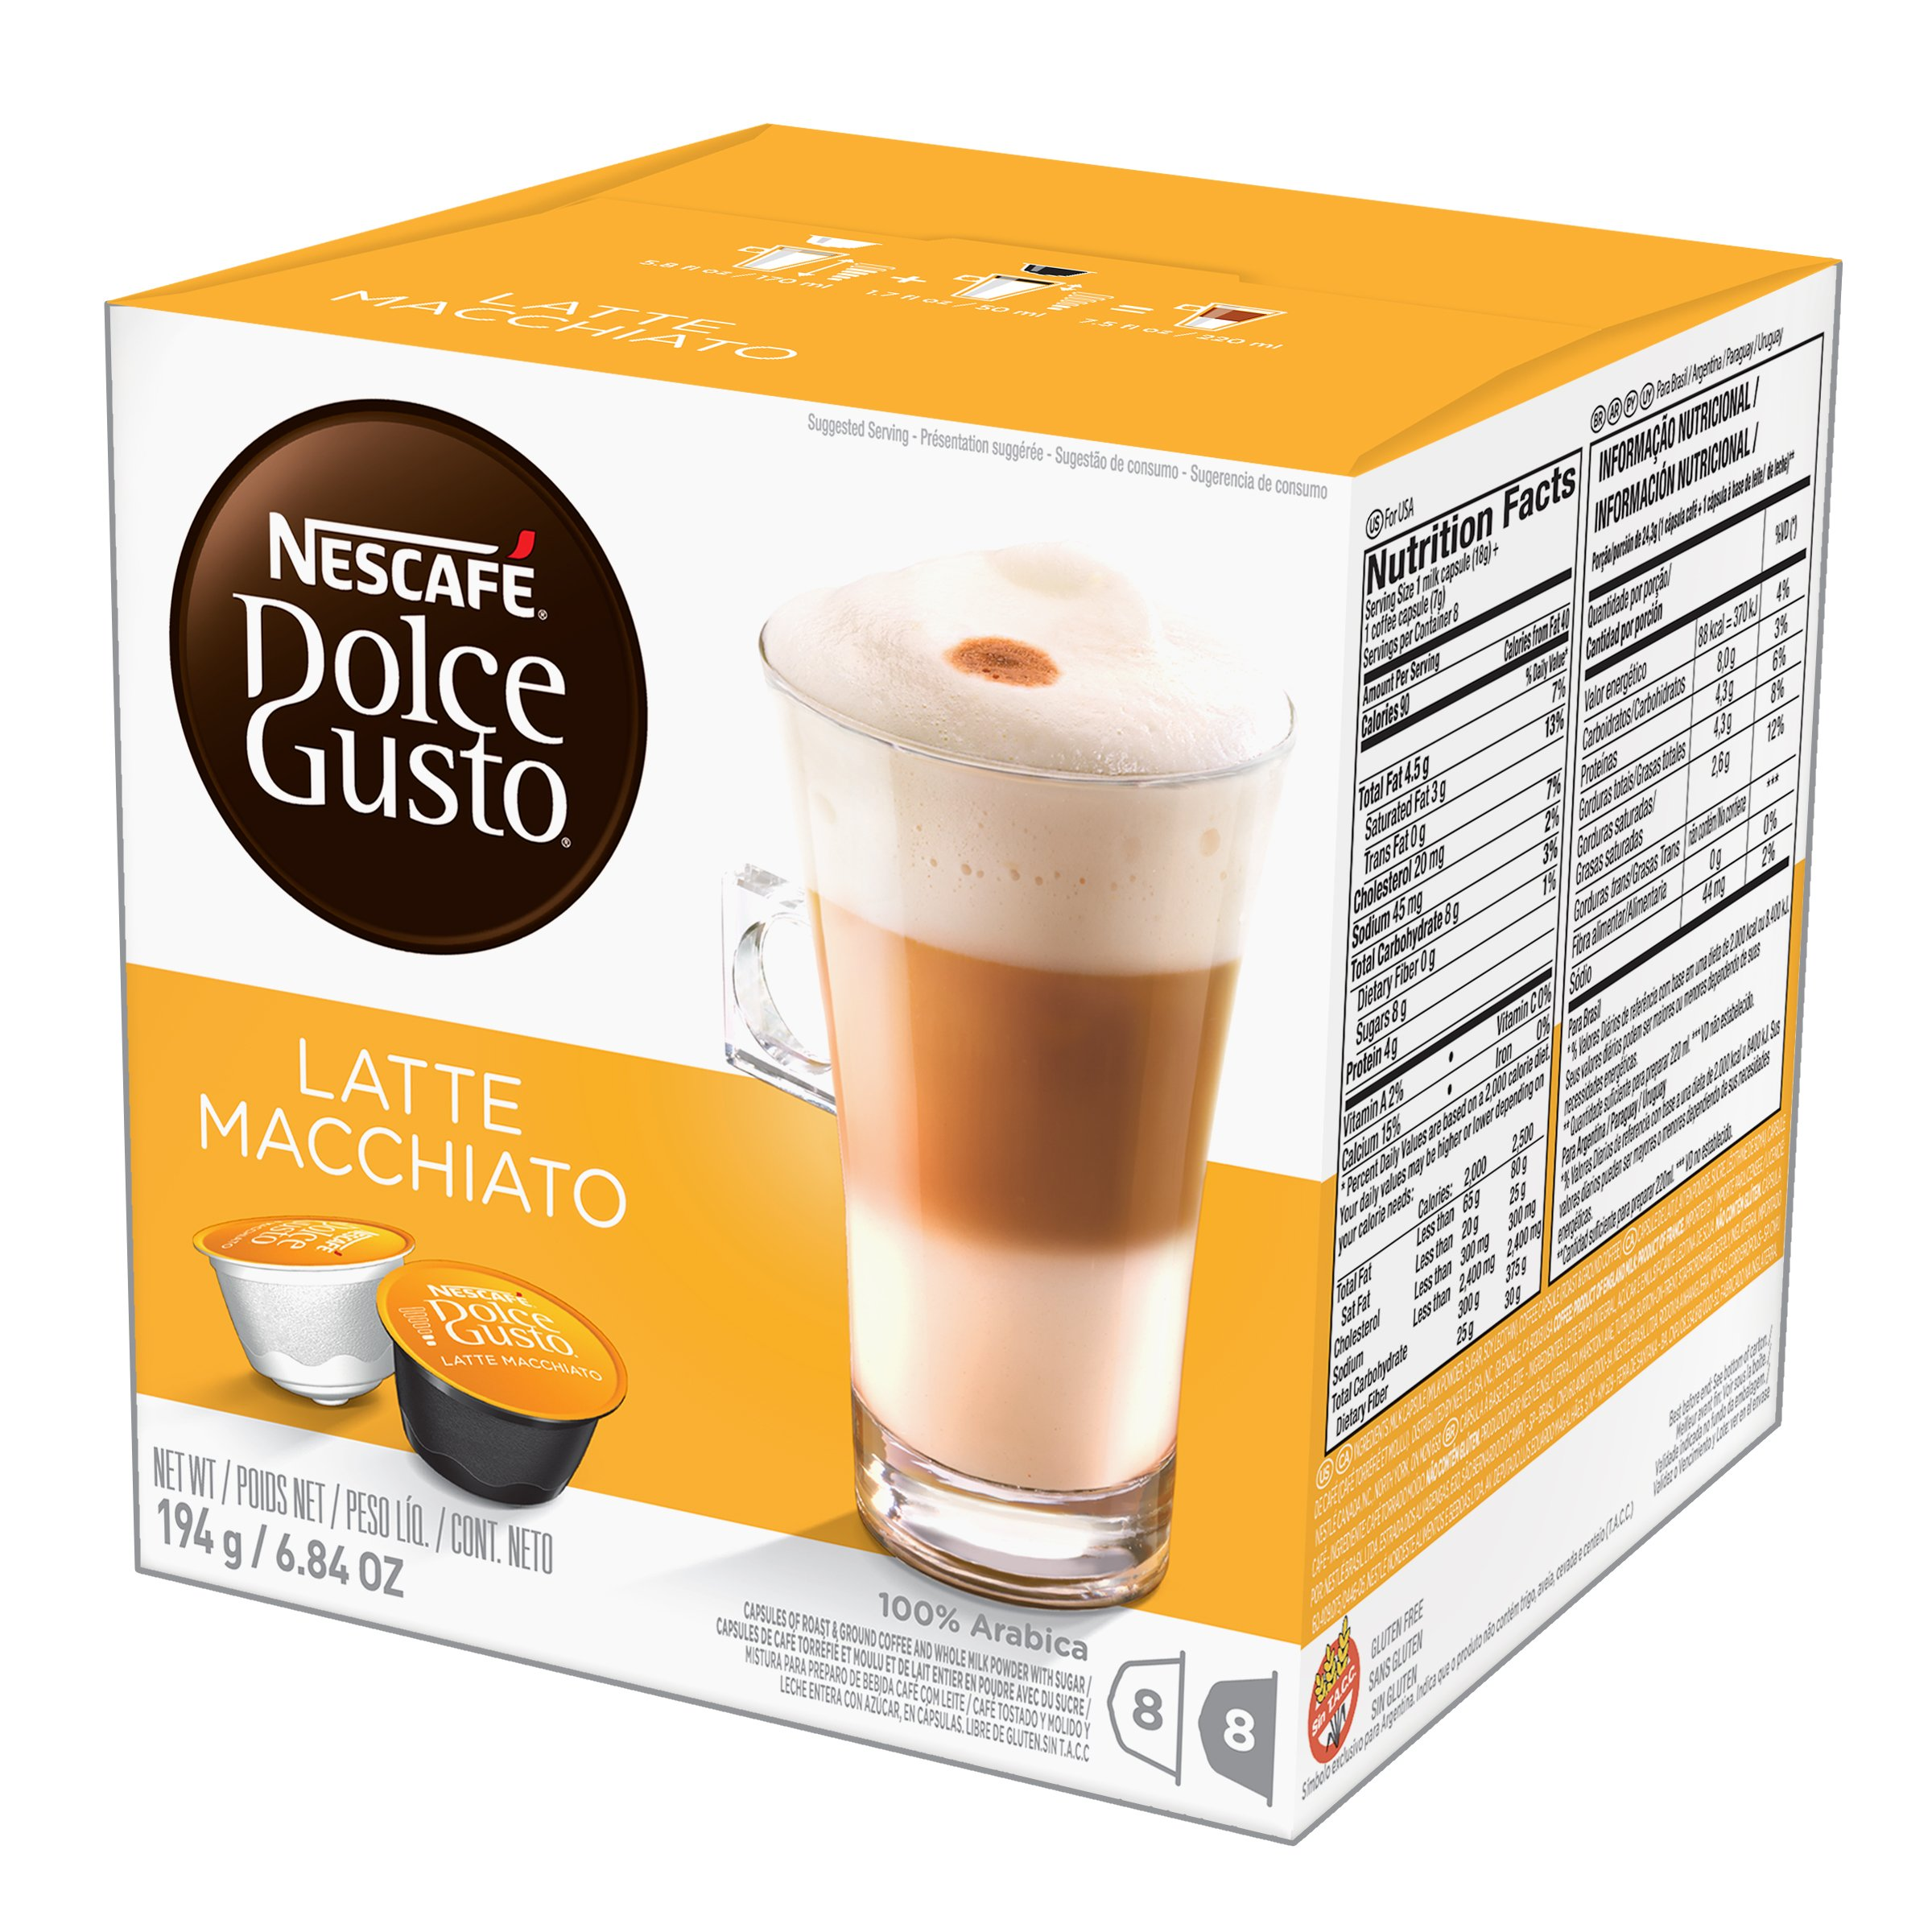 Amazon.com : Nescafé Dolce Gusto Tea Latte Set of 3, Tea ...